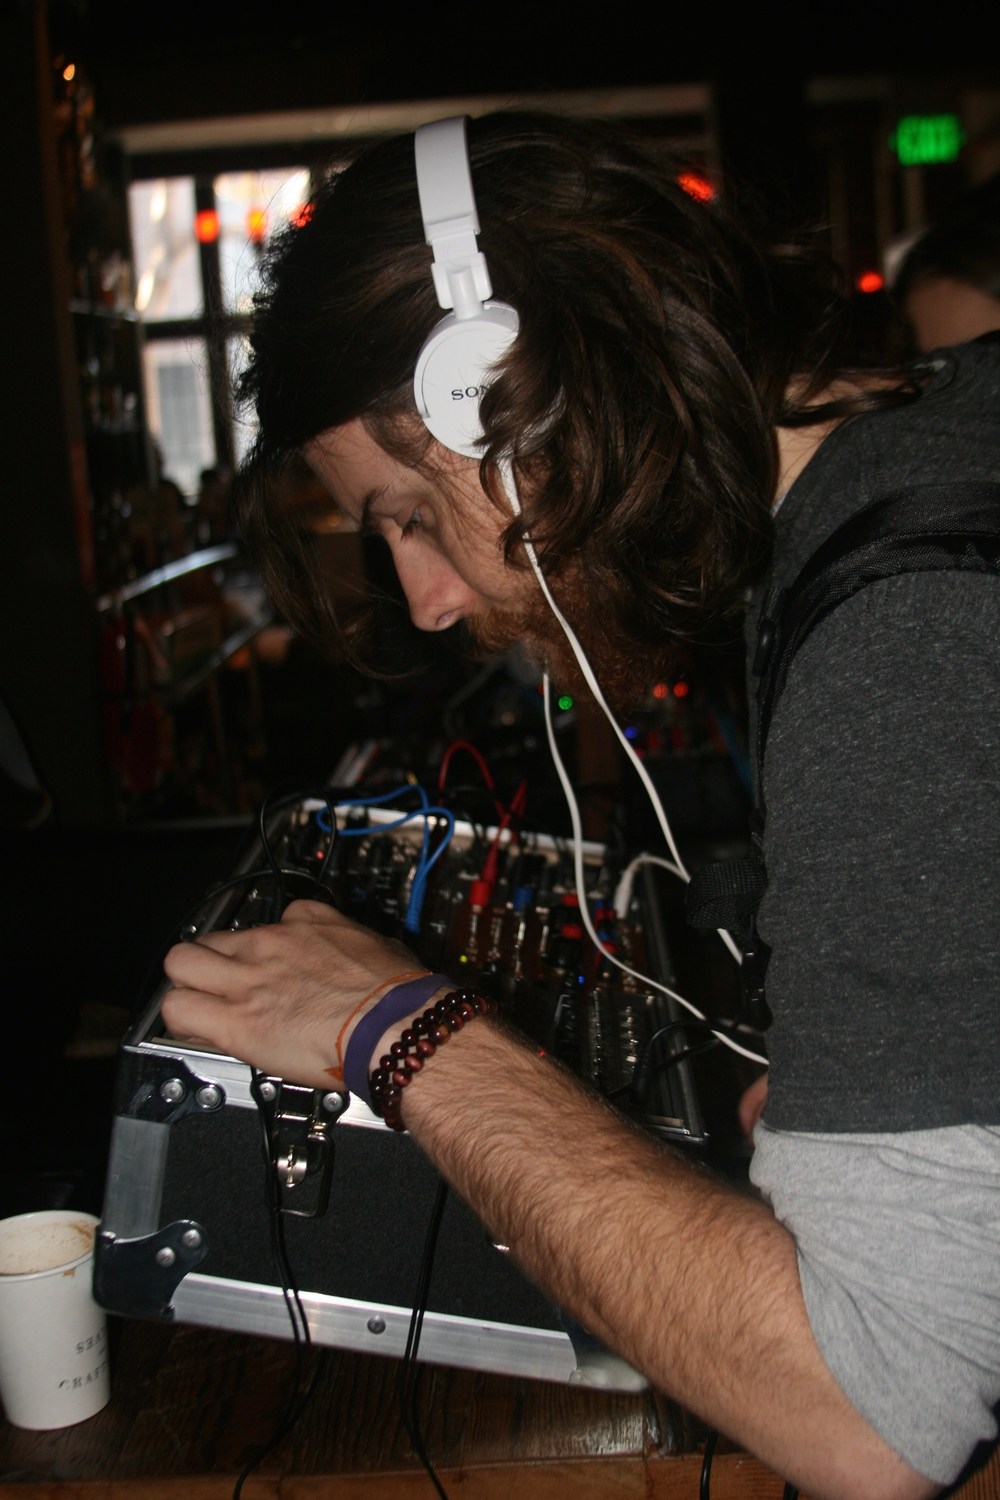 Attendee sampling modular synths from I/O